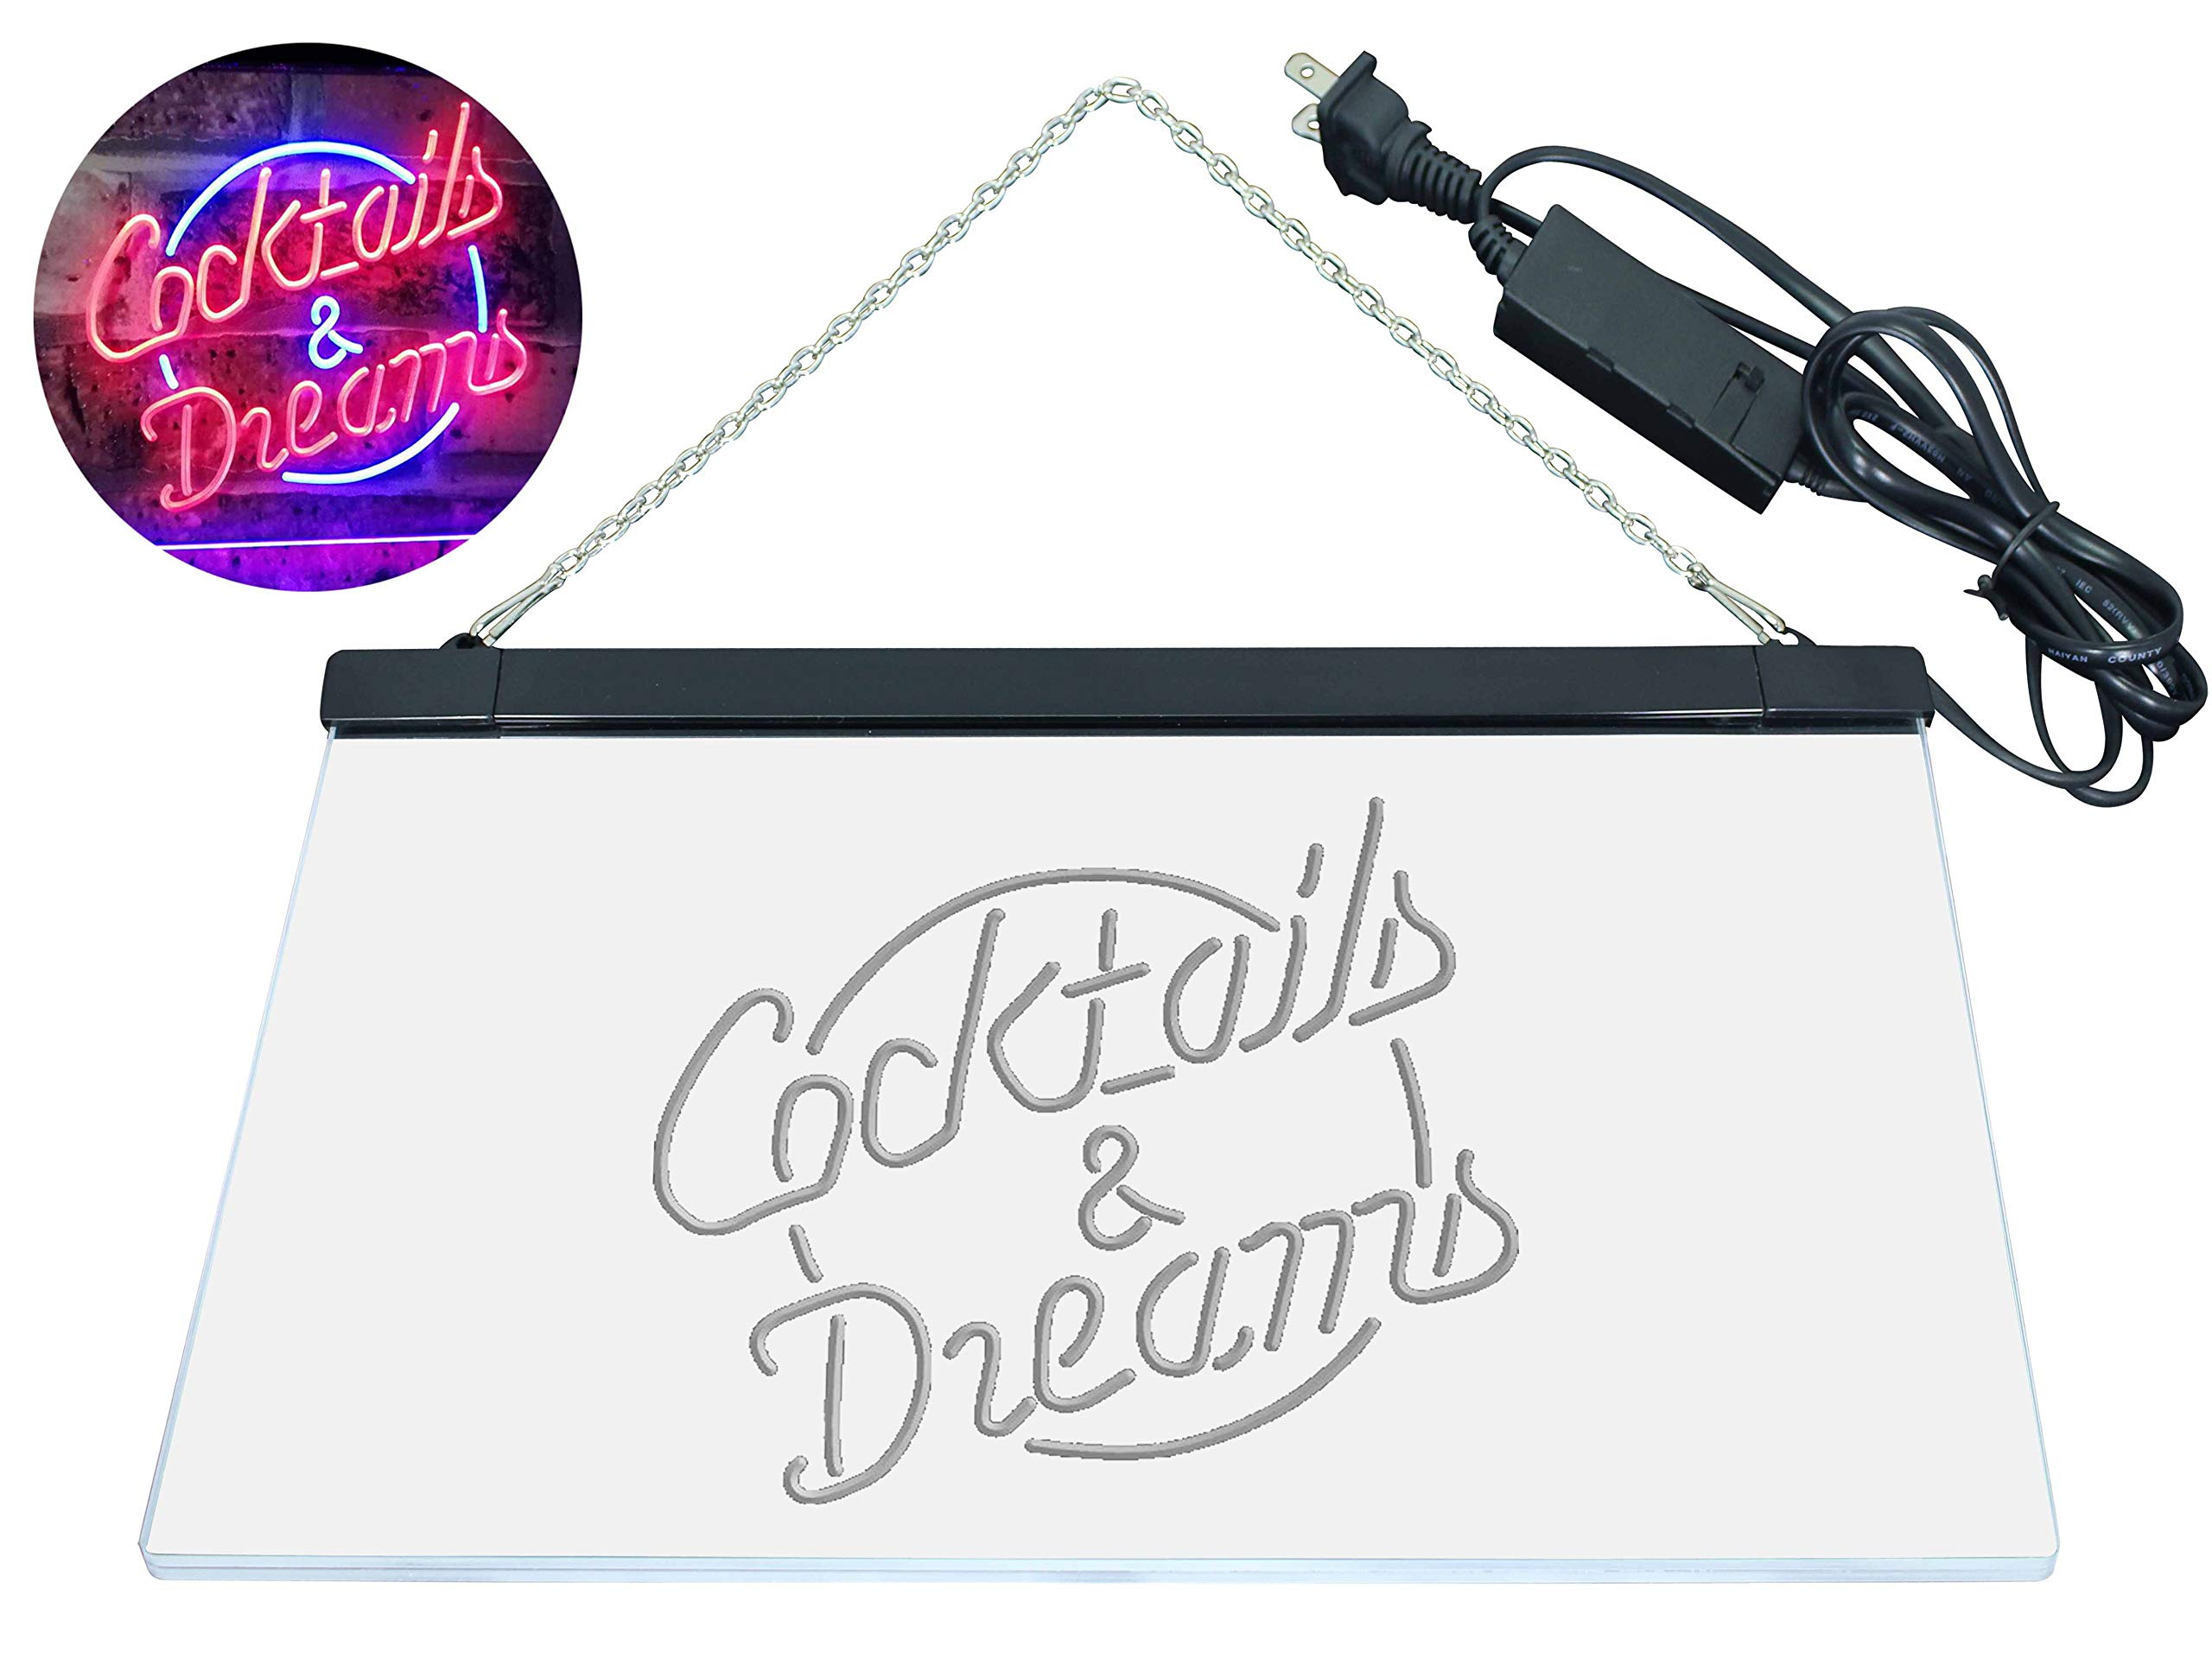 AdvpPro 2C Cocktails & Dreams Bar Beer Wine Drink Pub Club Dual Color LED Neon Sign Blue & Red 12'' x 8.5'' st6s32-i2079-br